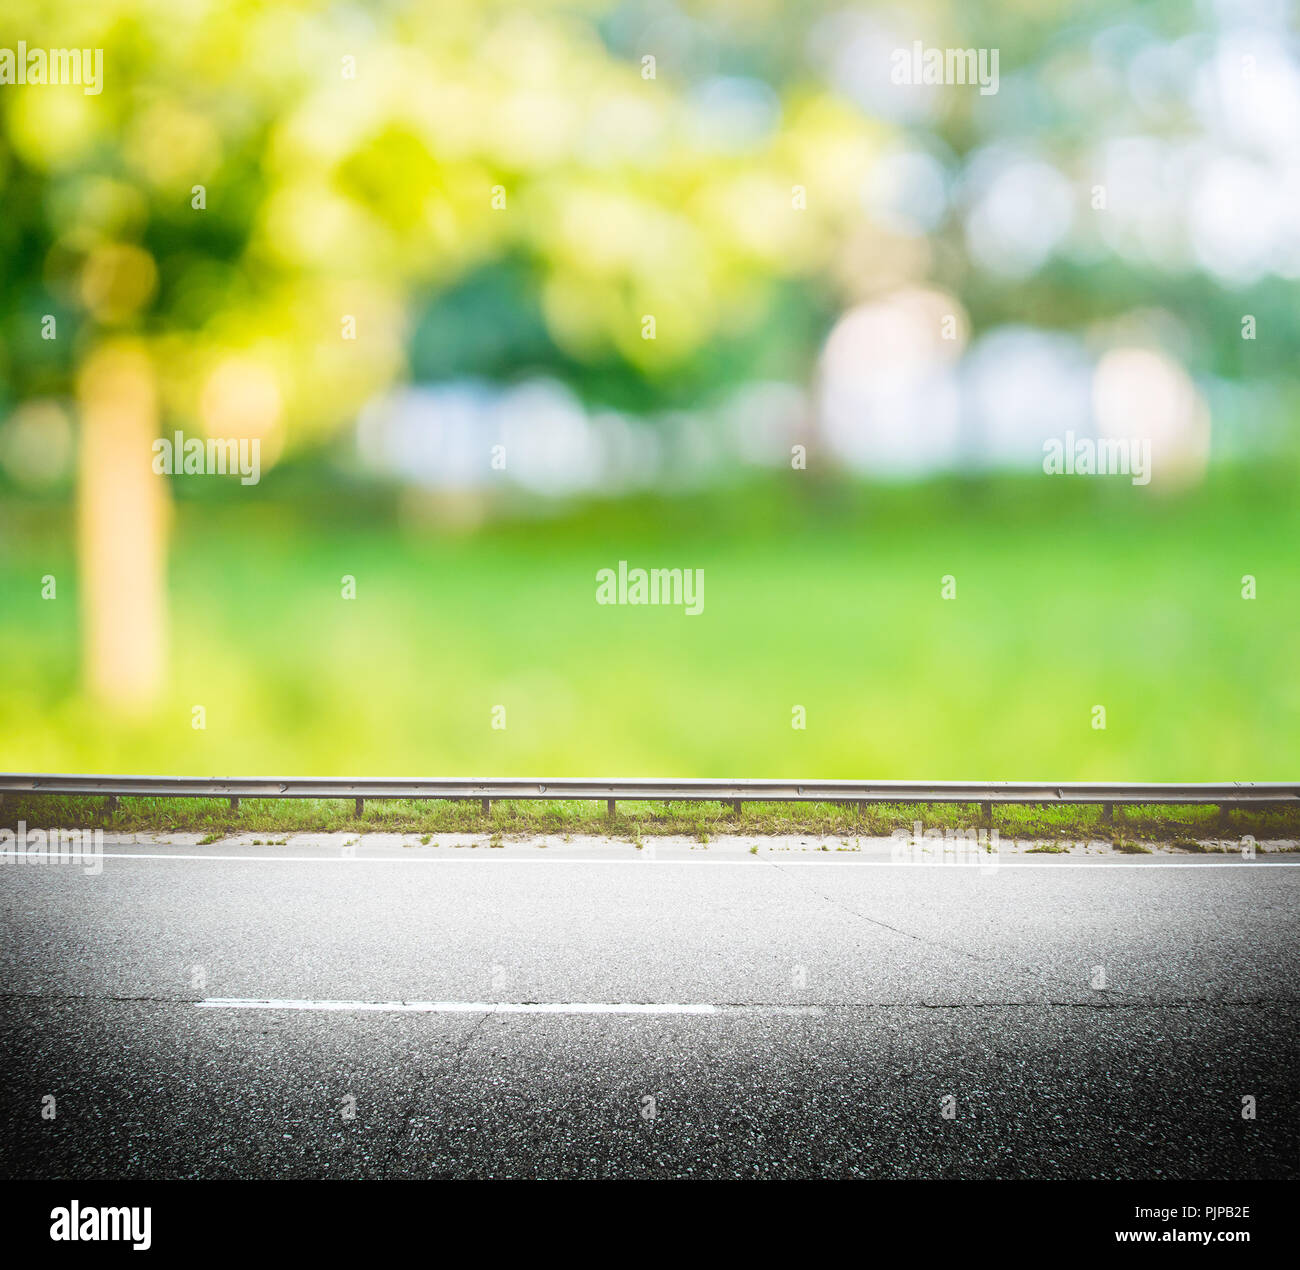 Green Forest Road Background Asphalt And Blurred Park Stock Photo Alamy